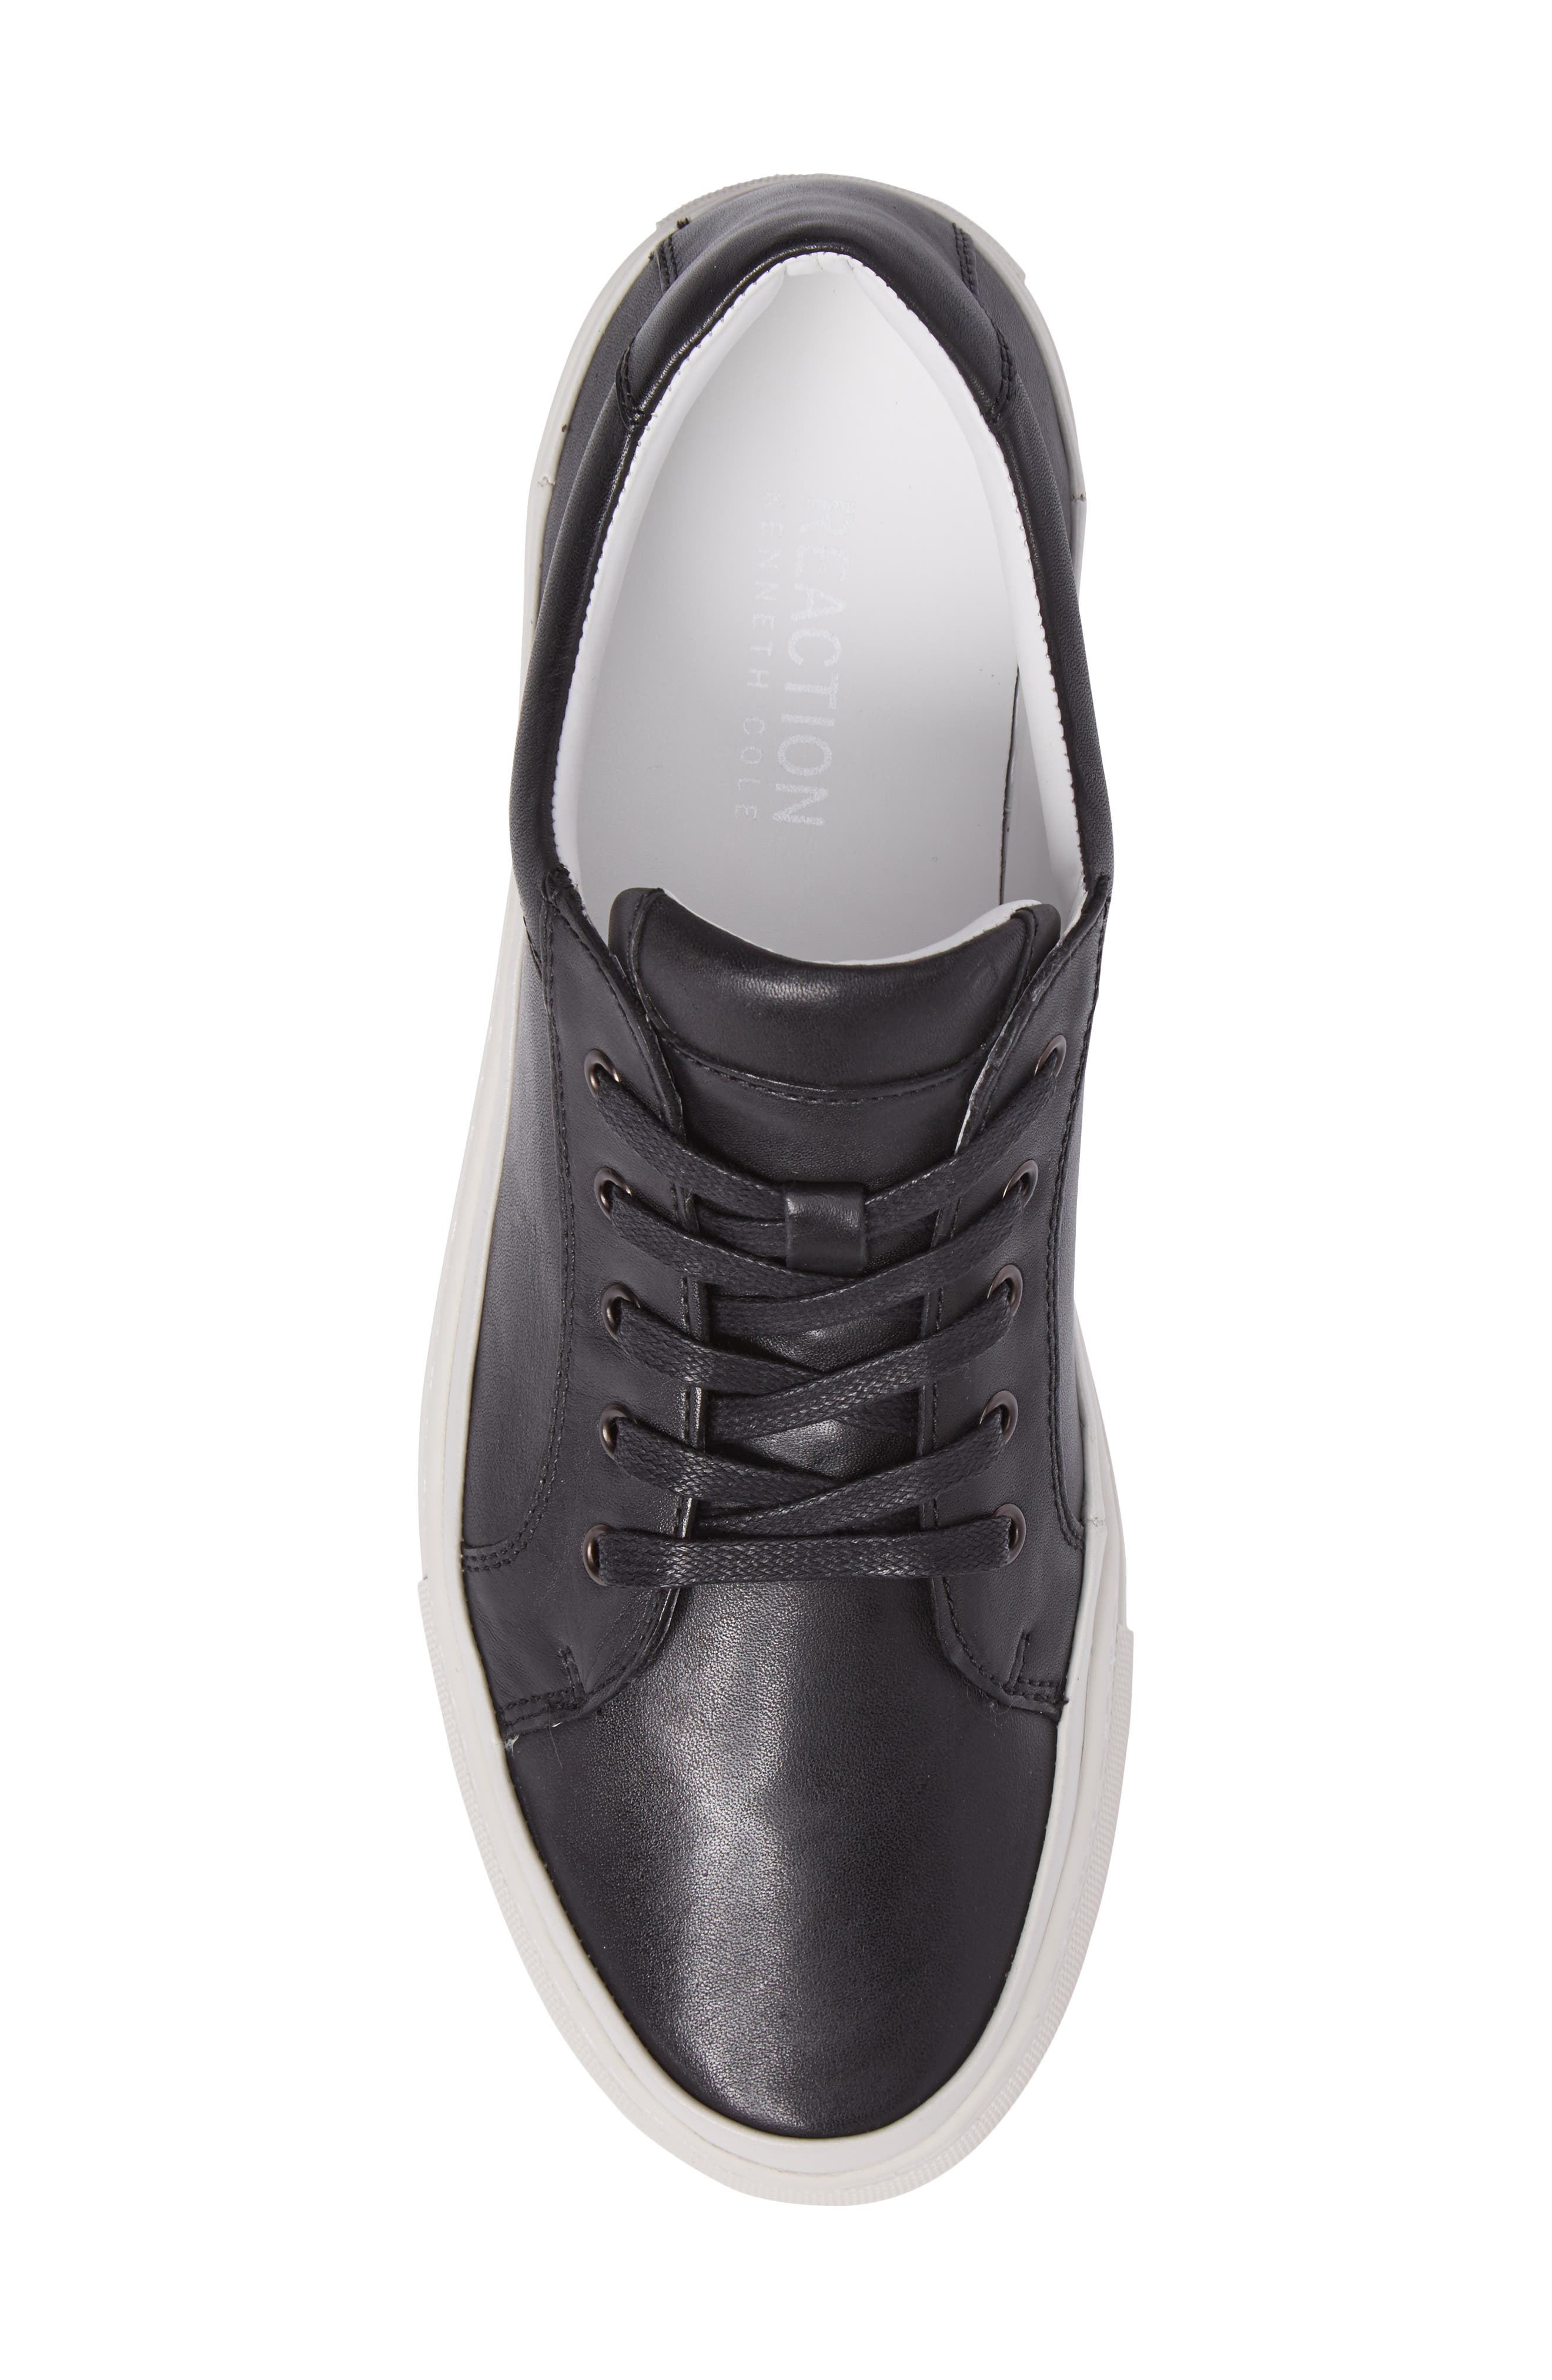 Kenneth Cole Reaction Sneaker,                             Alternate thumbnail 5, color,                             016